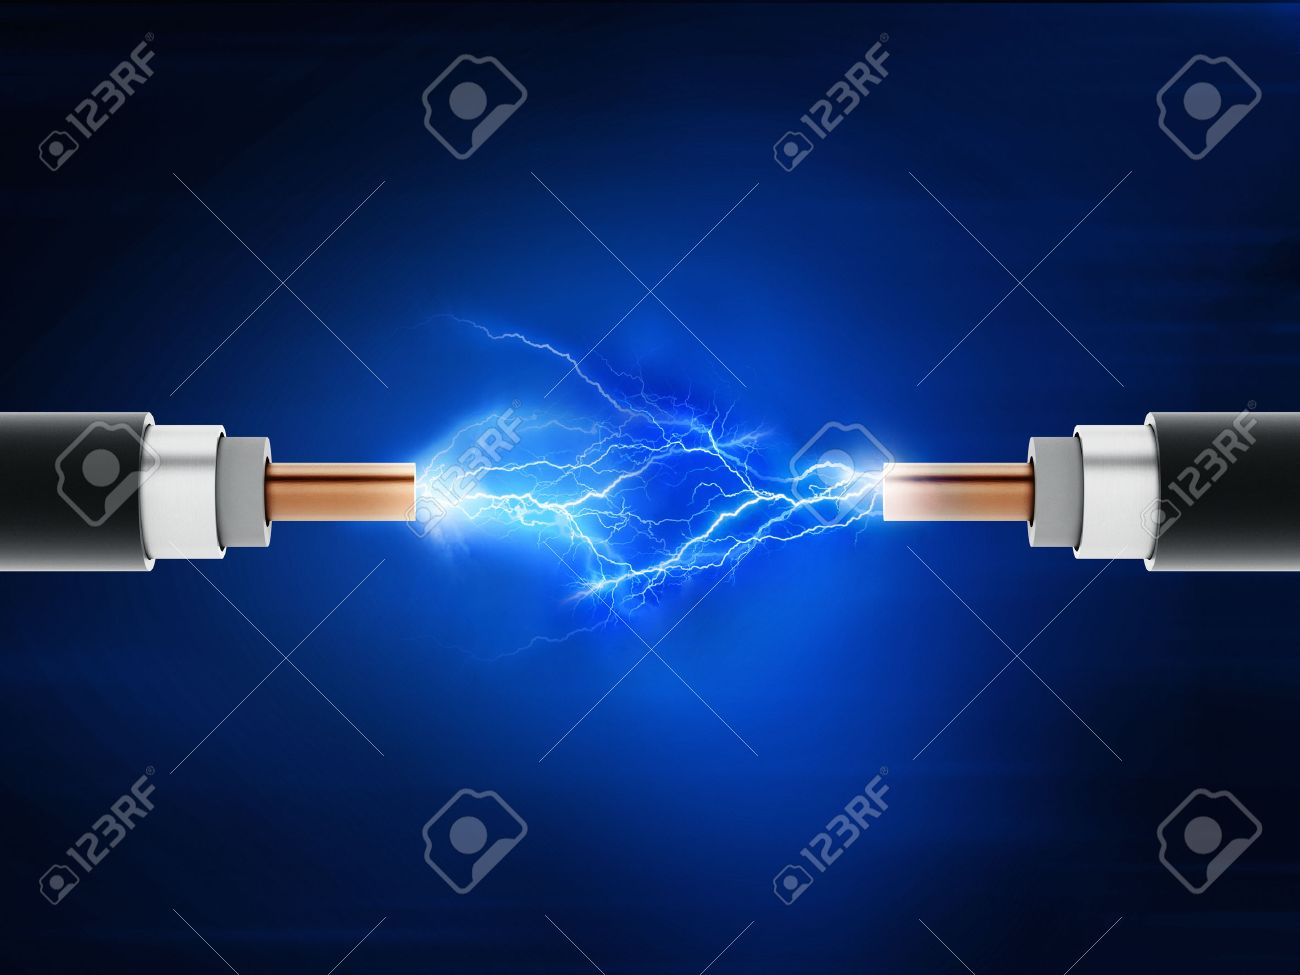 Power cables with sparkles on blue background Stock Photo - 40800655